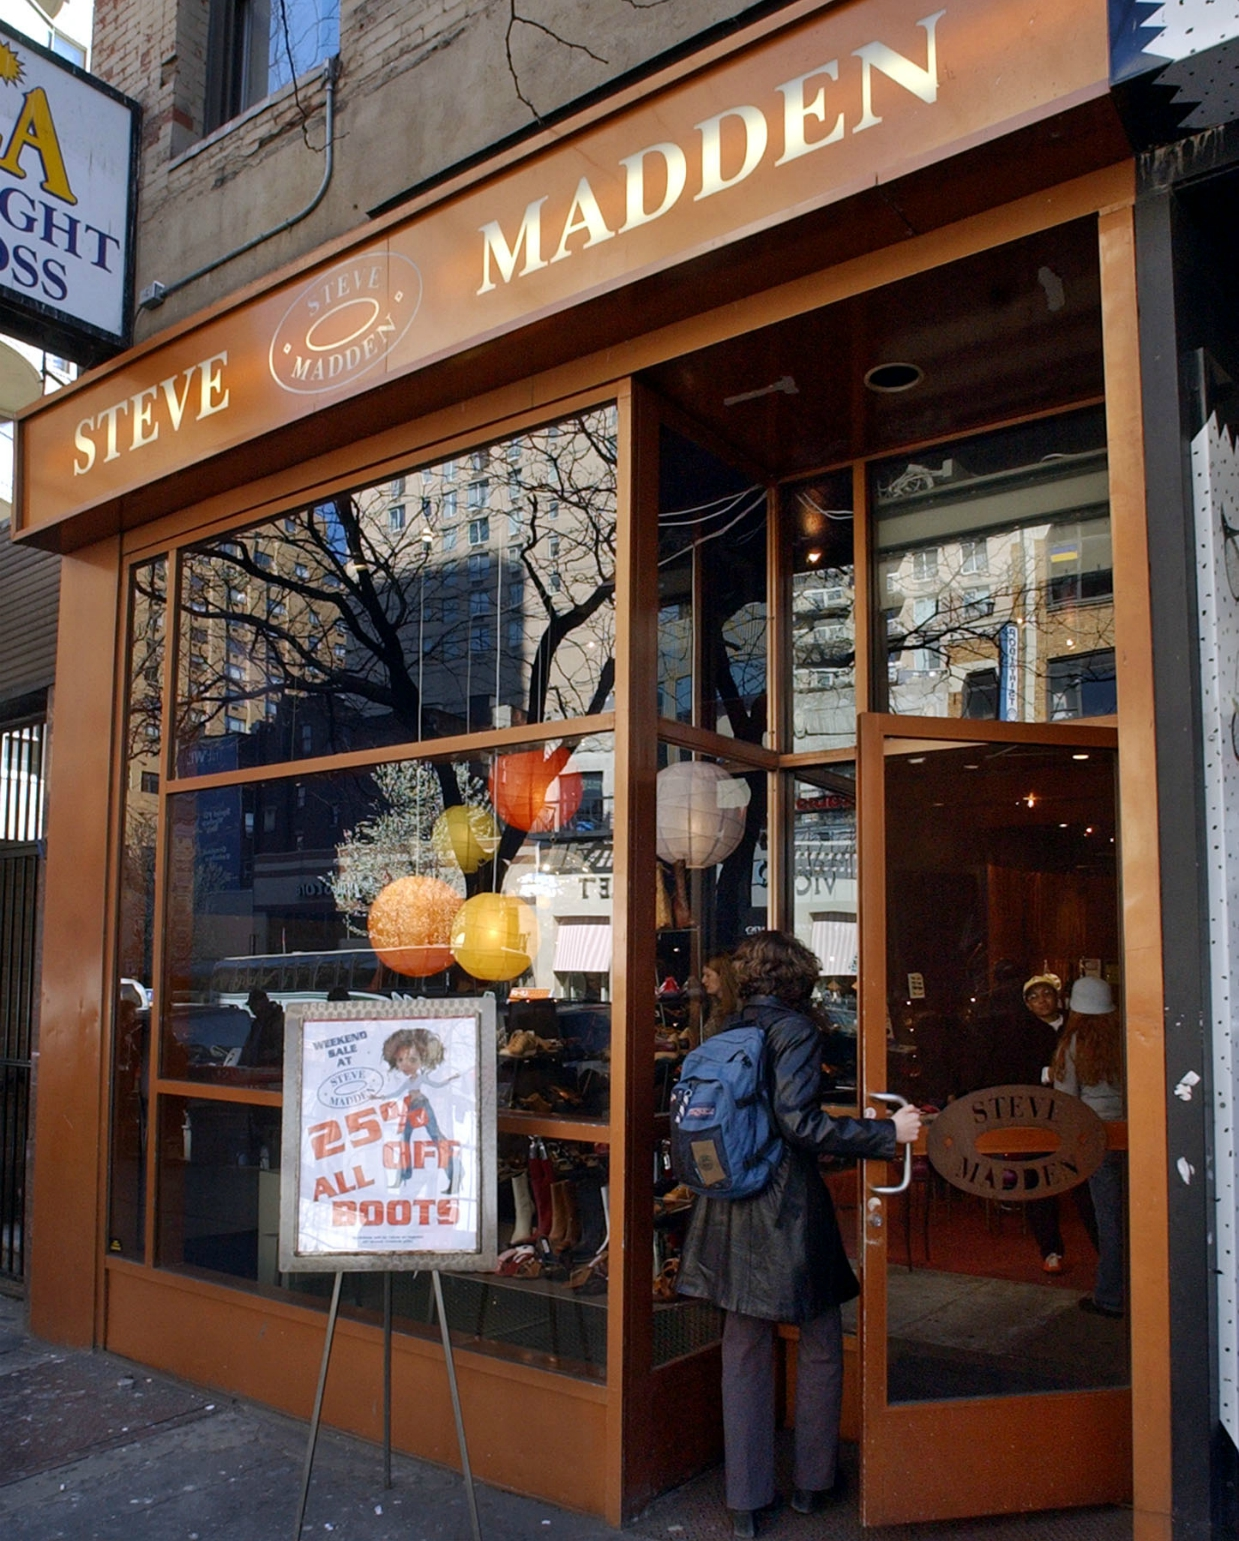 Contributing to Steve Madden's Q2 loss were cancelled wholesale orders, which impacted sales for footwear and accessories and apparel.